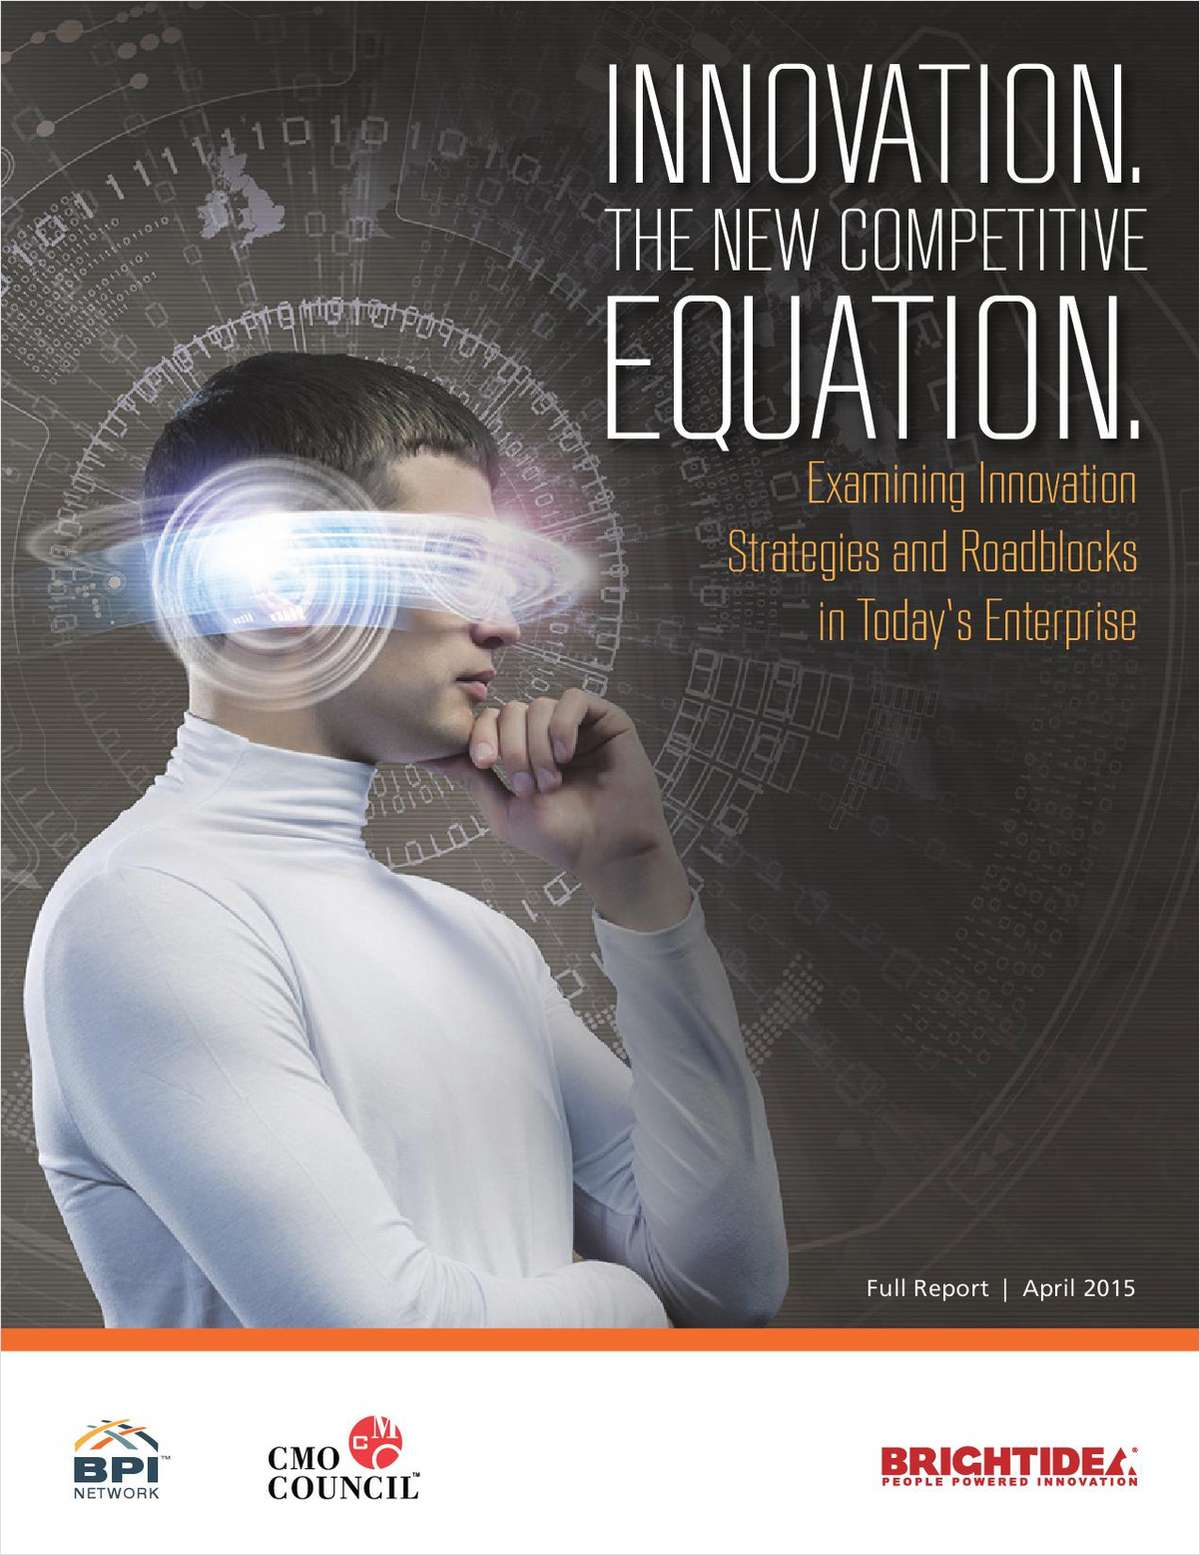 Innovation: The New Competitive Equation